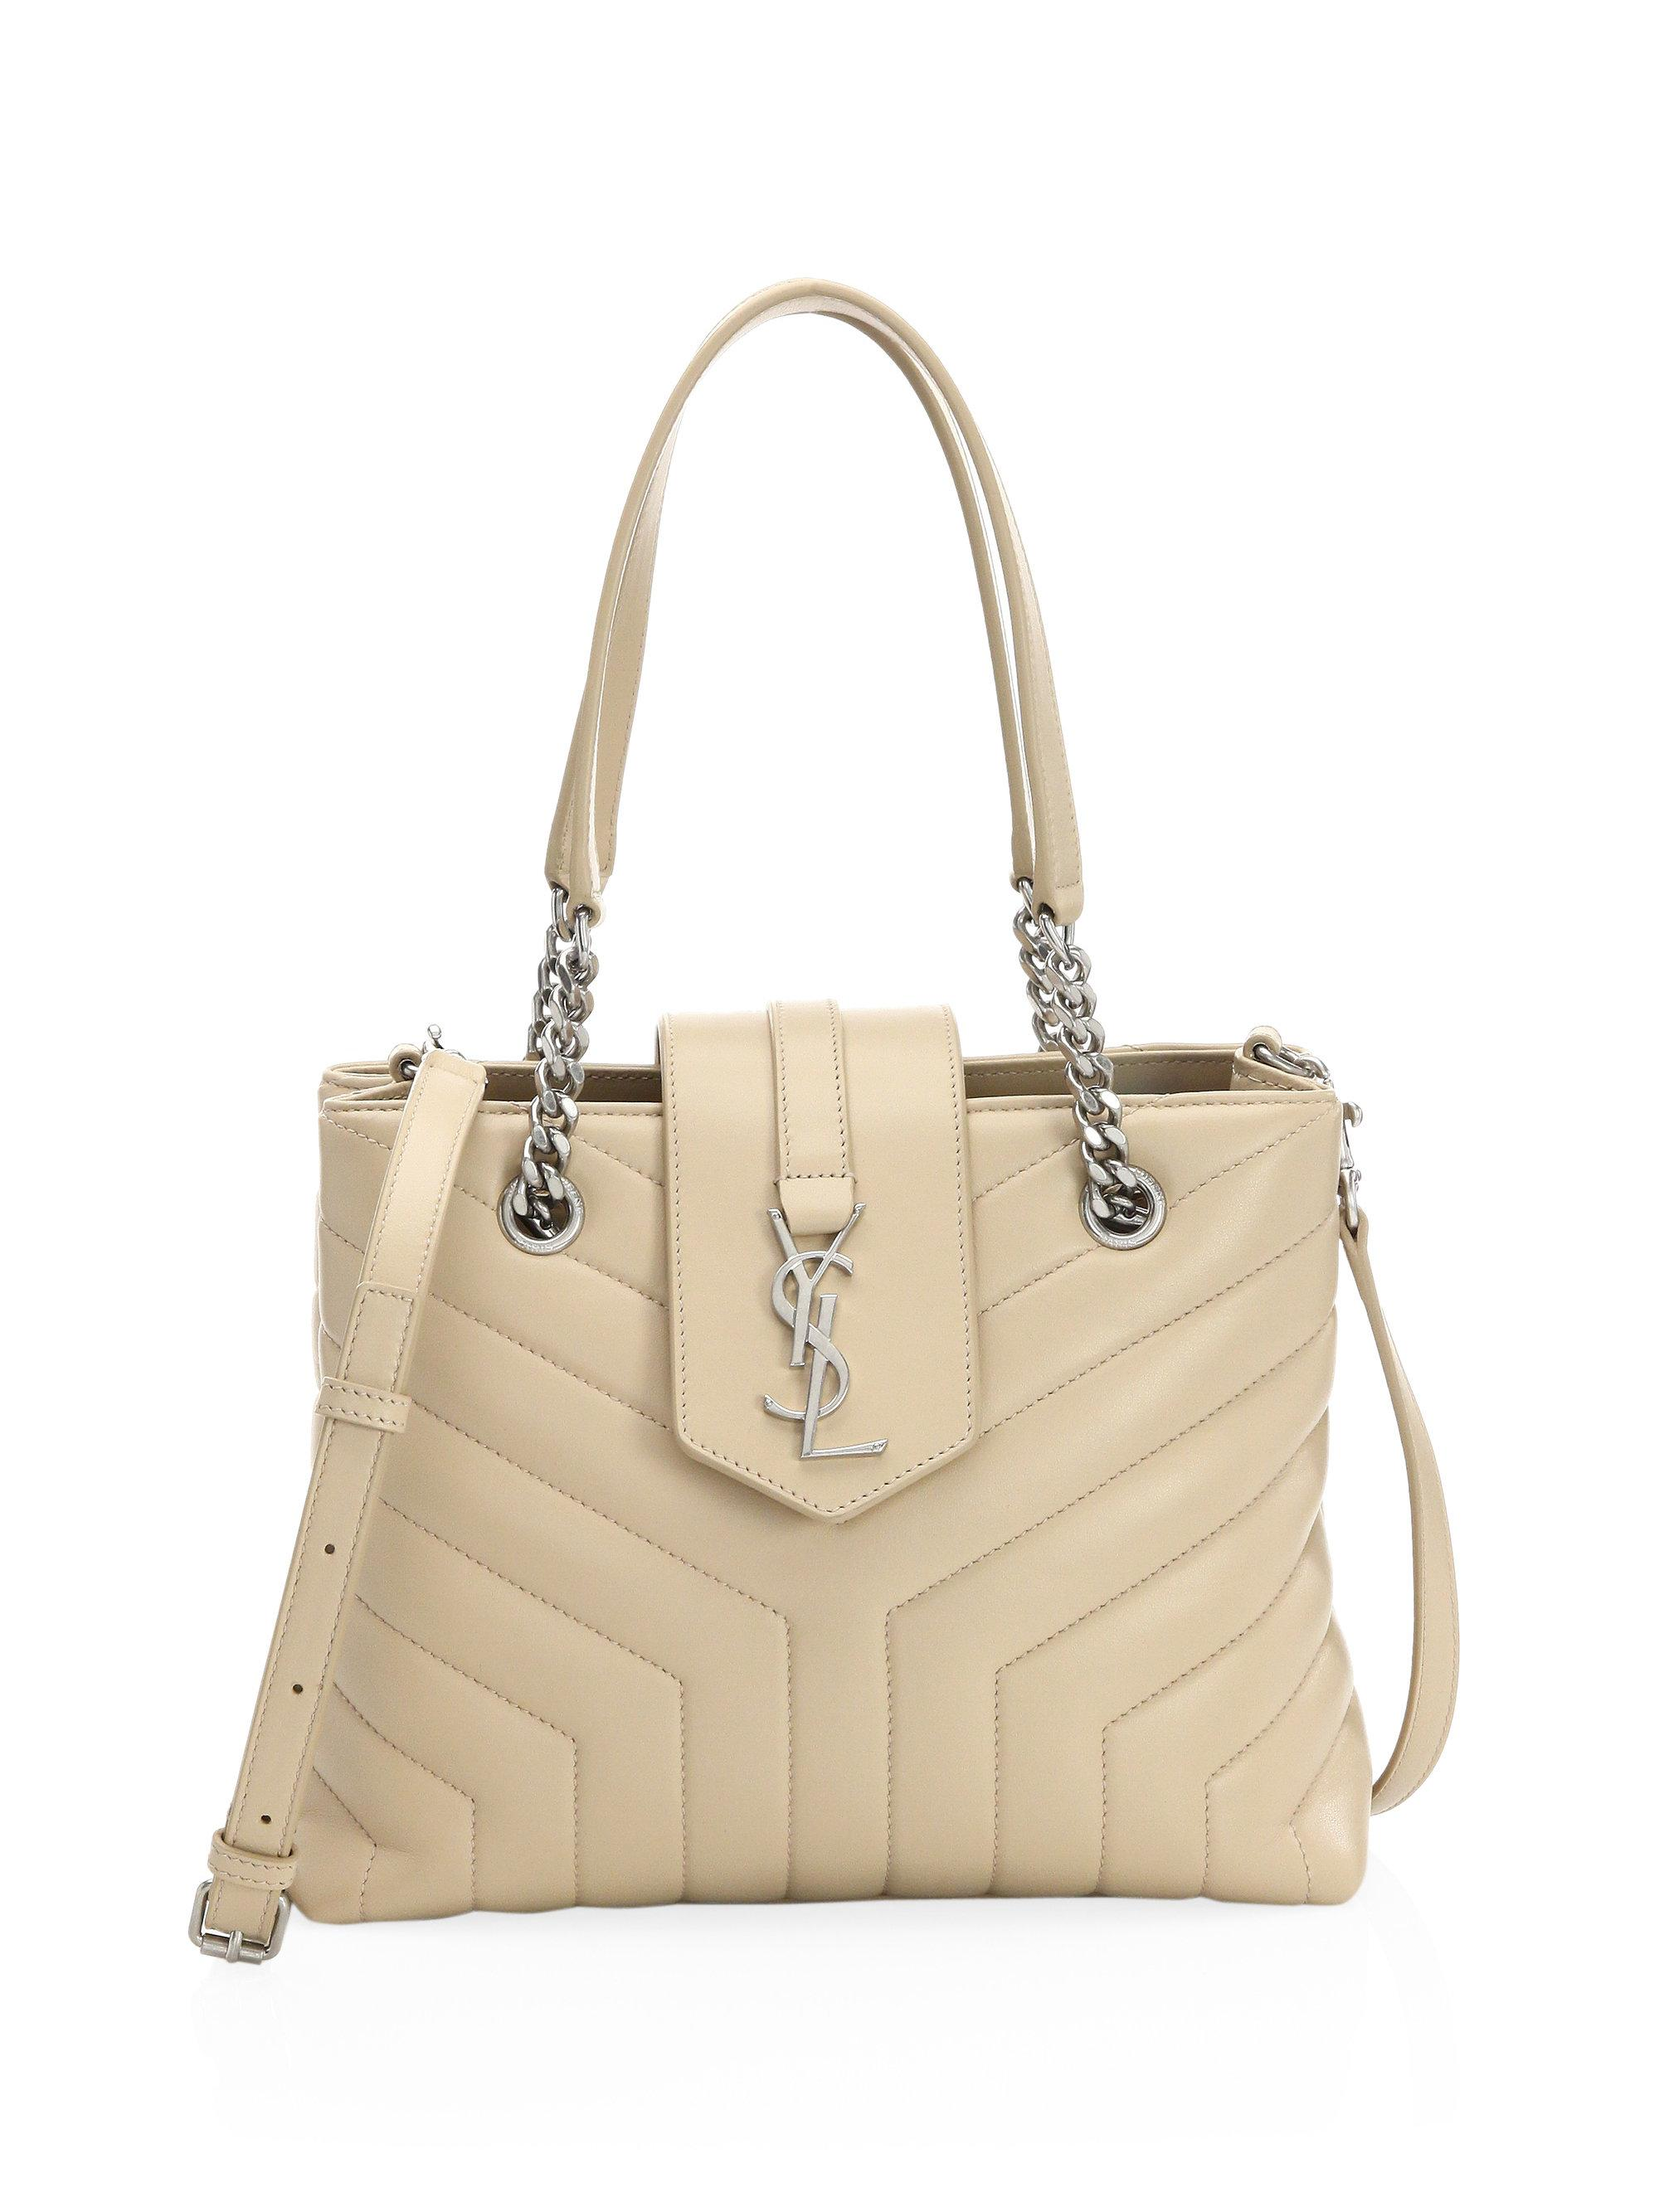 566a8bf423 Saint Laurent Small Lou Lou Leather Shopping Bag in Natural - Lyst